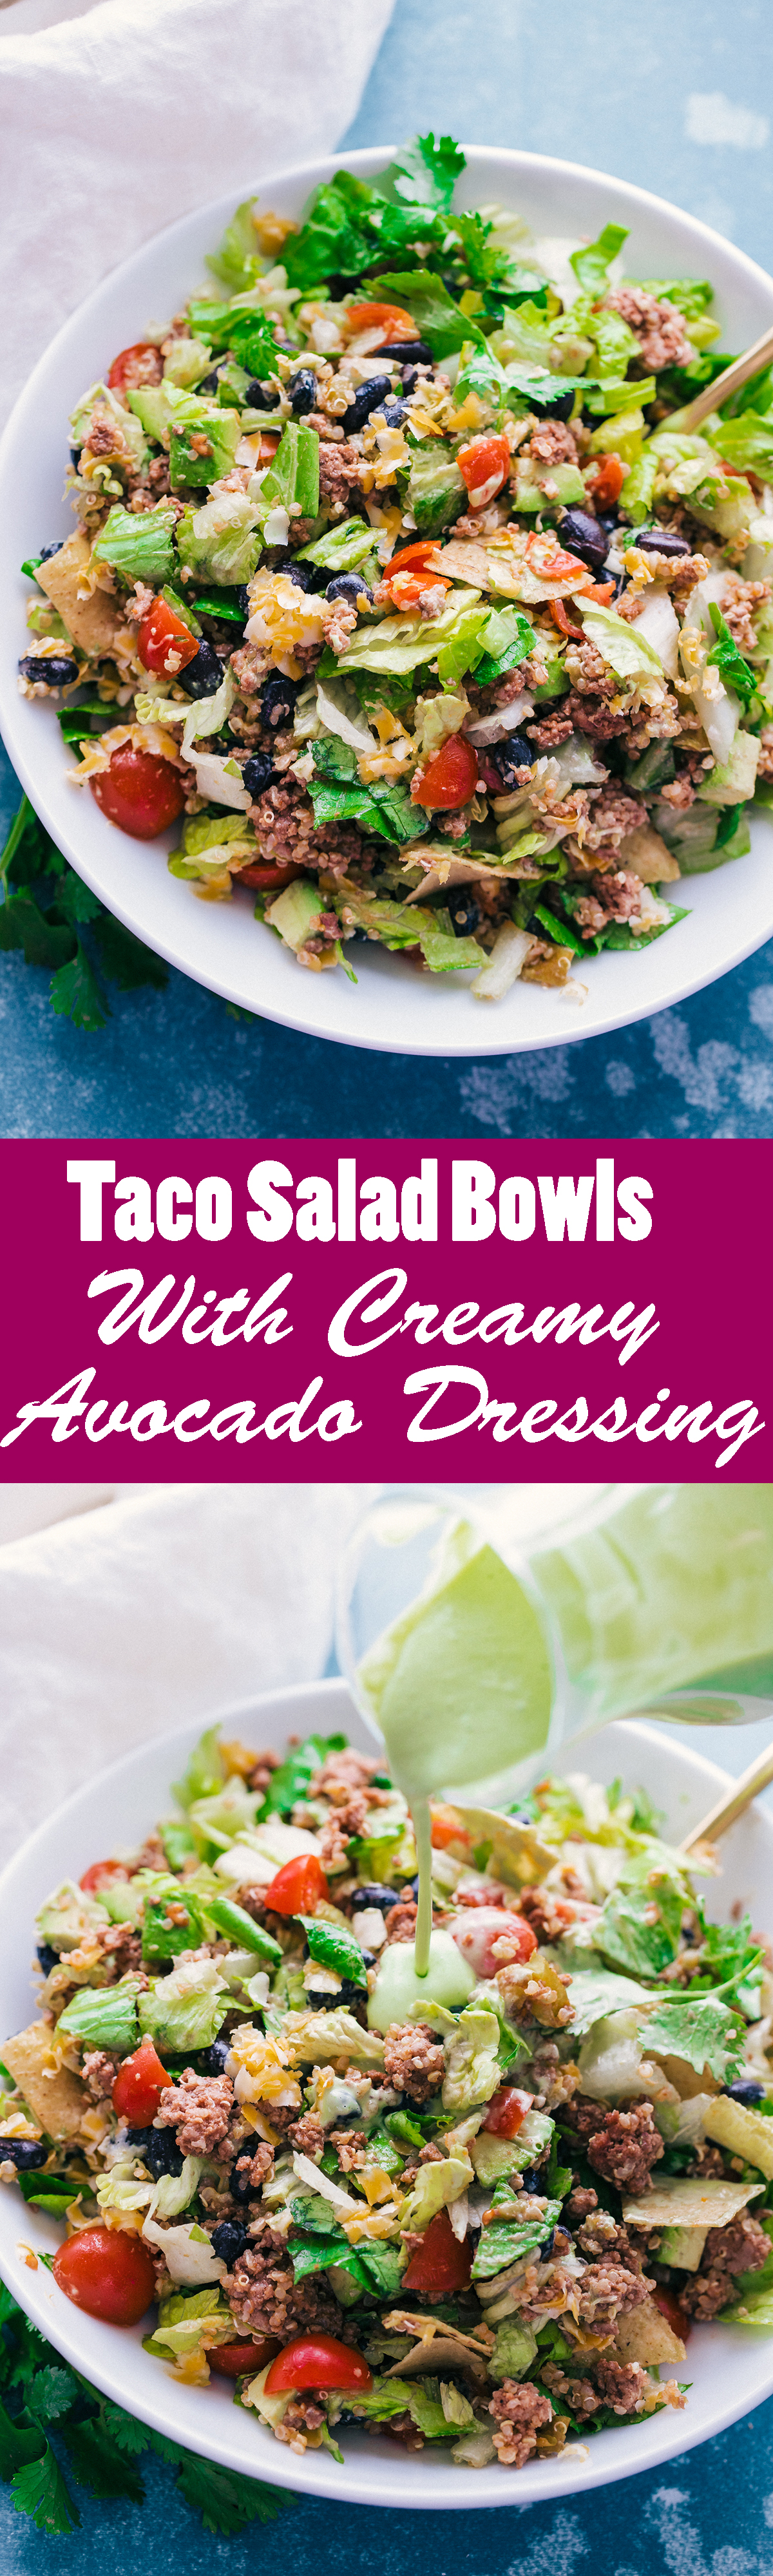 Taco Salad Bowls with Creamy Avocado Dressing are the perfect way to enjoy a taco and salad all in one. Loaded with all the fixings and topped with a delicious Creamy Avocado Dressing. #EasyRecipe #SaladBowl #Taco #Tacos #Fresh #Homemade #Avocado